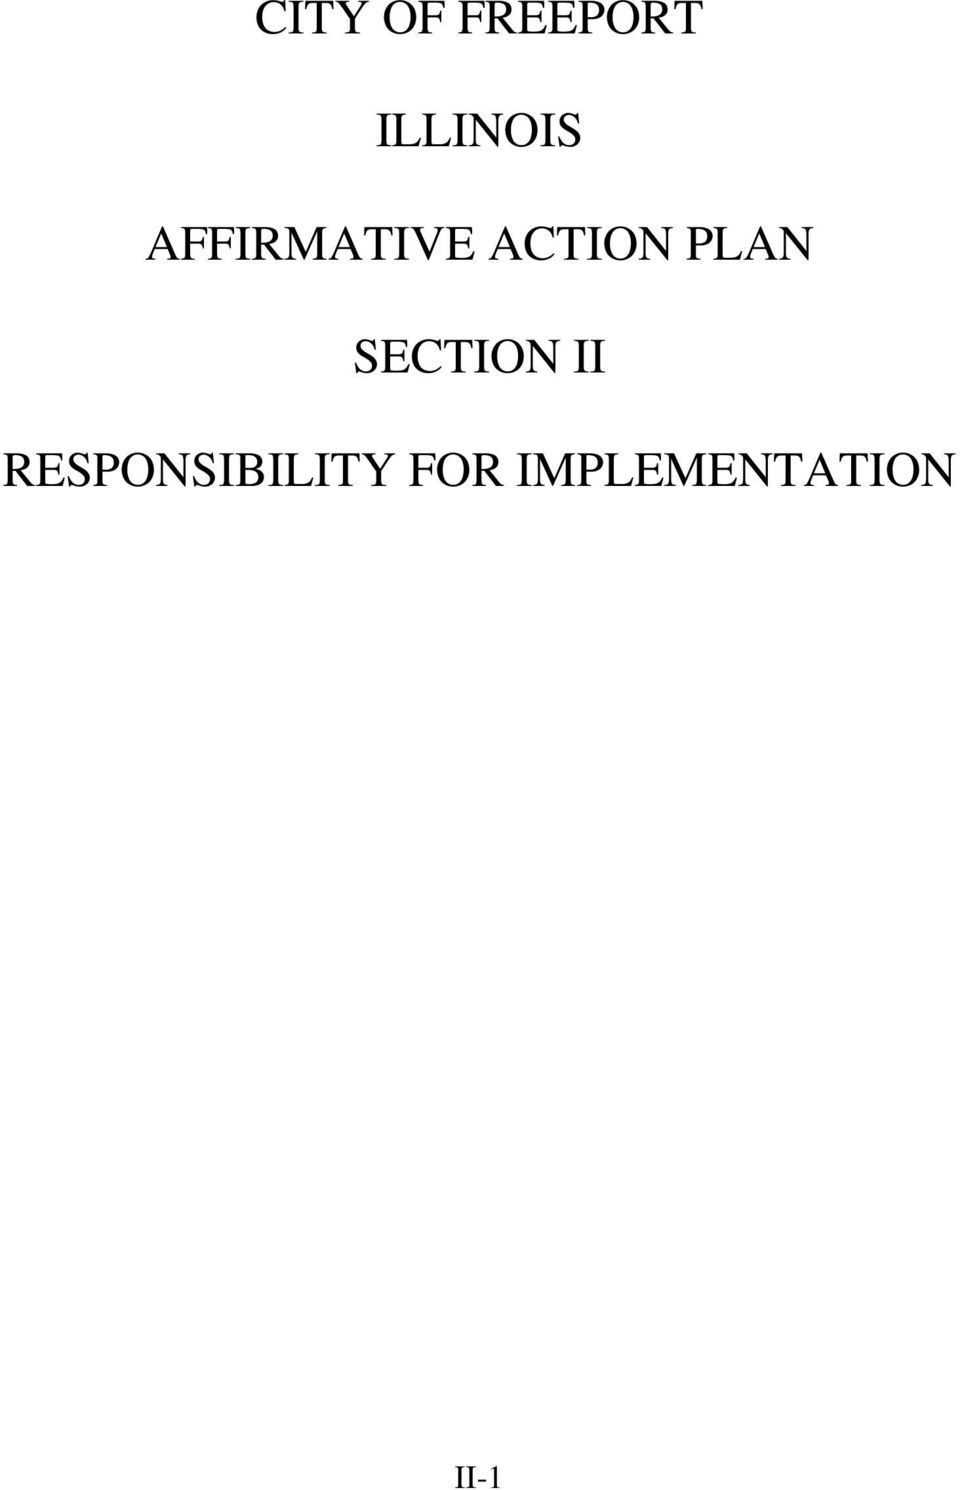 ACTION PLAN SECTION II